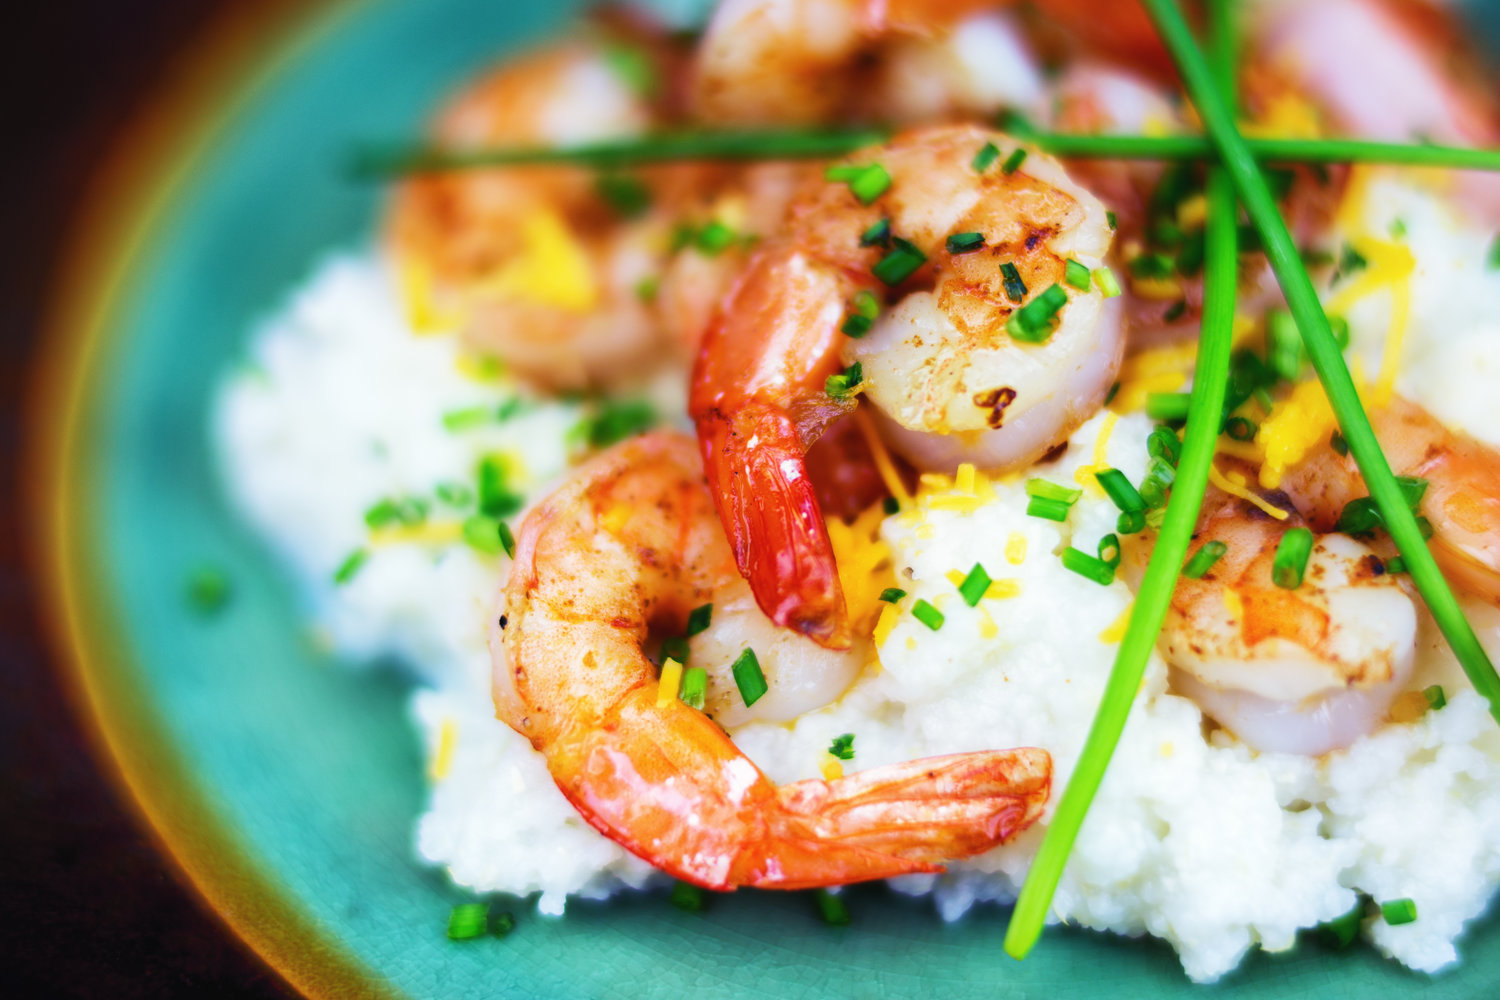 5 Seafood Restaurant Trends To Look Out For This Year